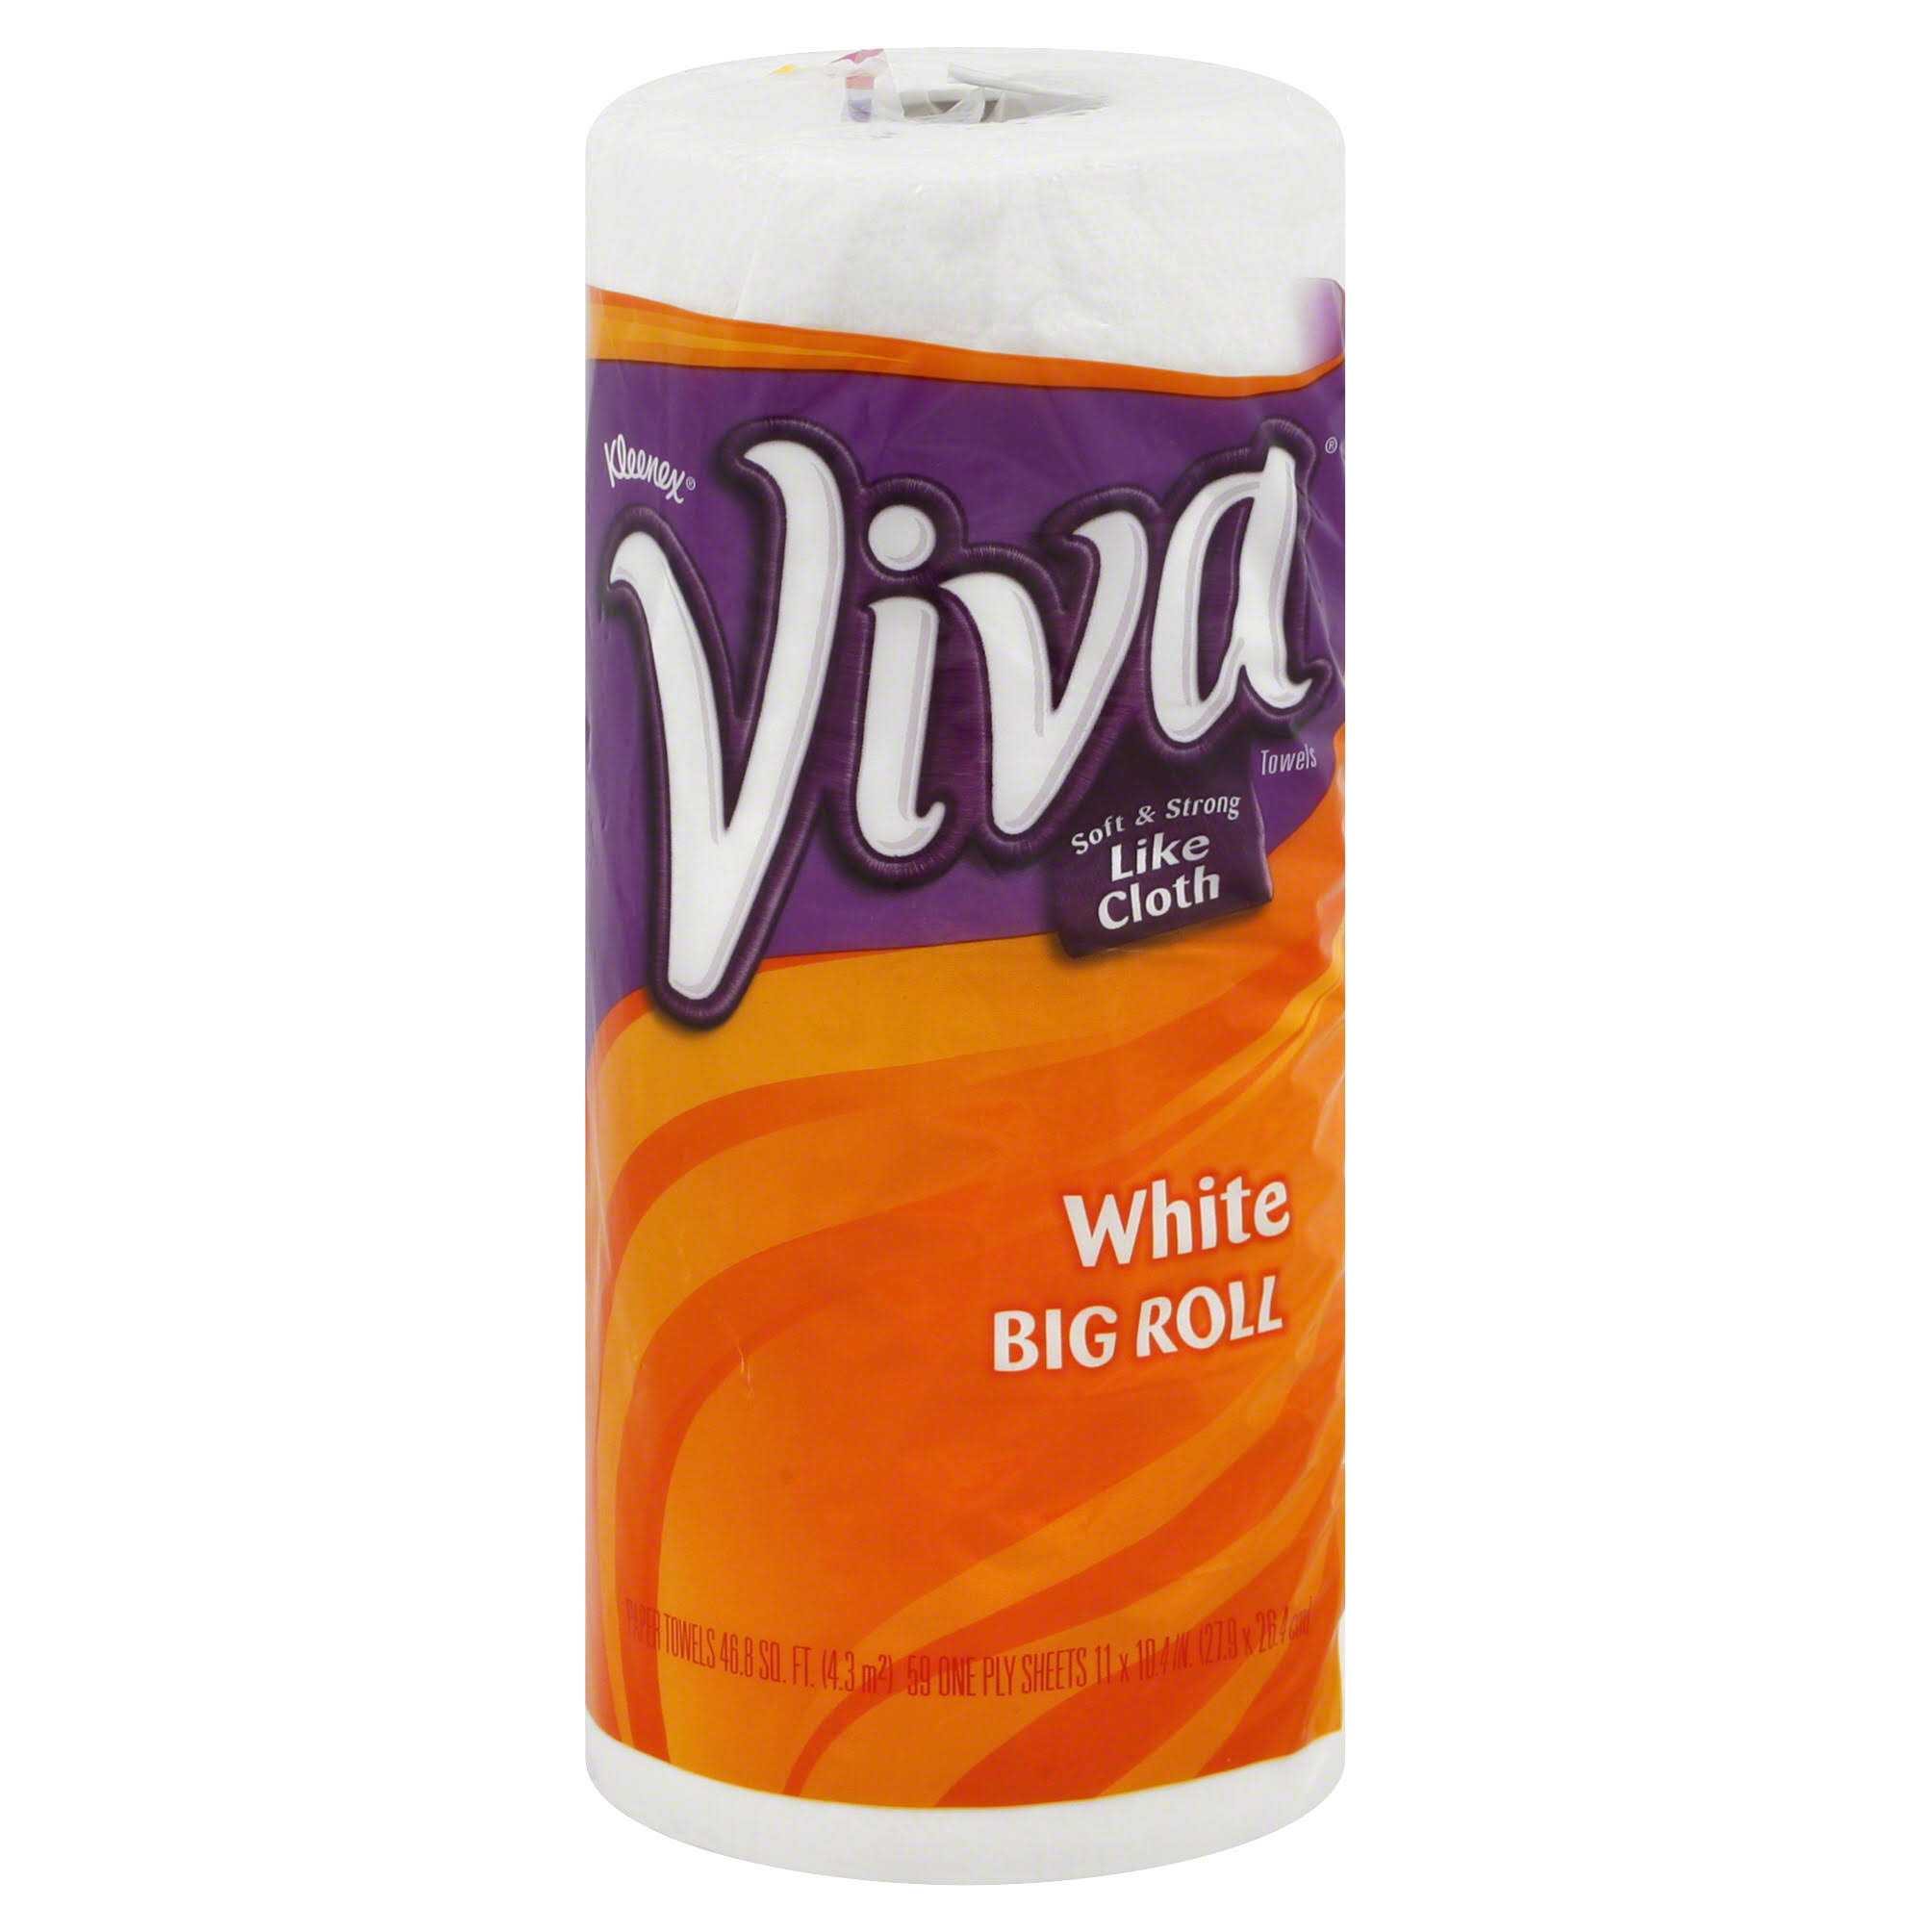 Viva Big Roll Paper Towels - 1ct, White, 1 Ply